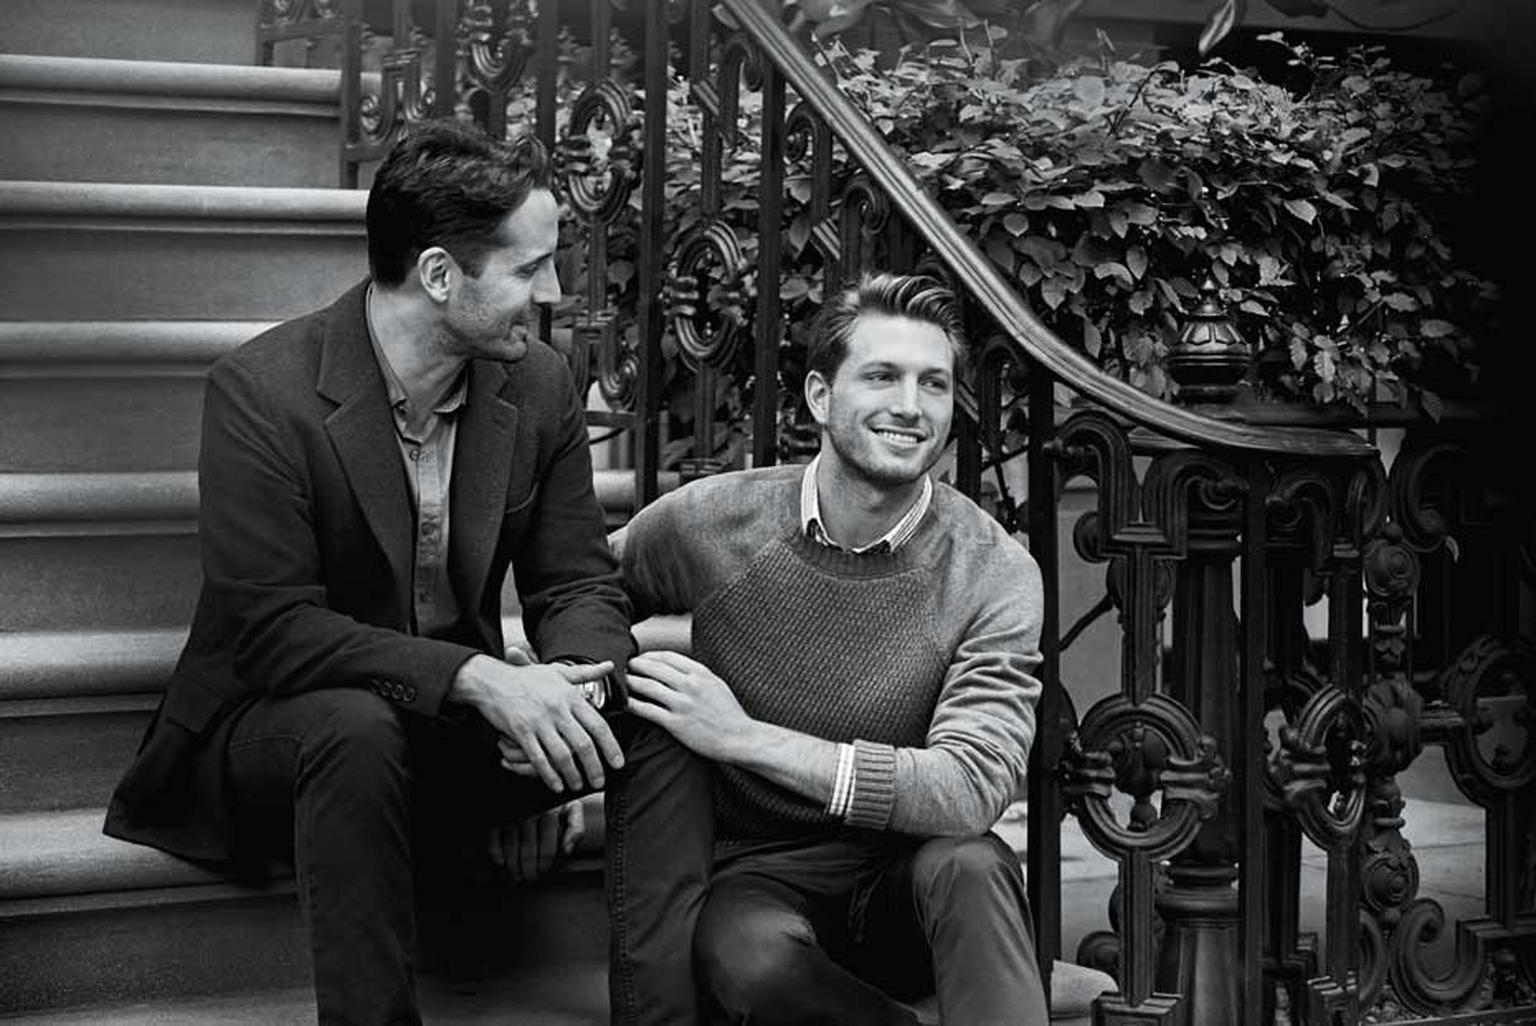 Tiffany celebrates the changing face of modern love by featuring a same-sex couple for the first time in its new 'Will You?' ad campaign.